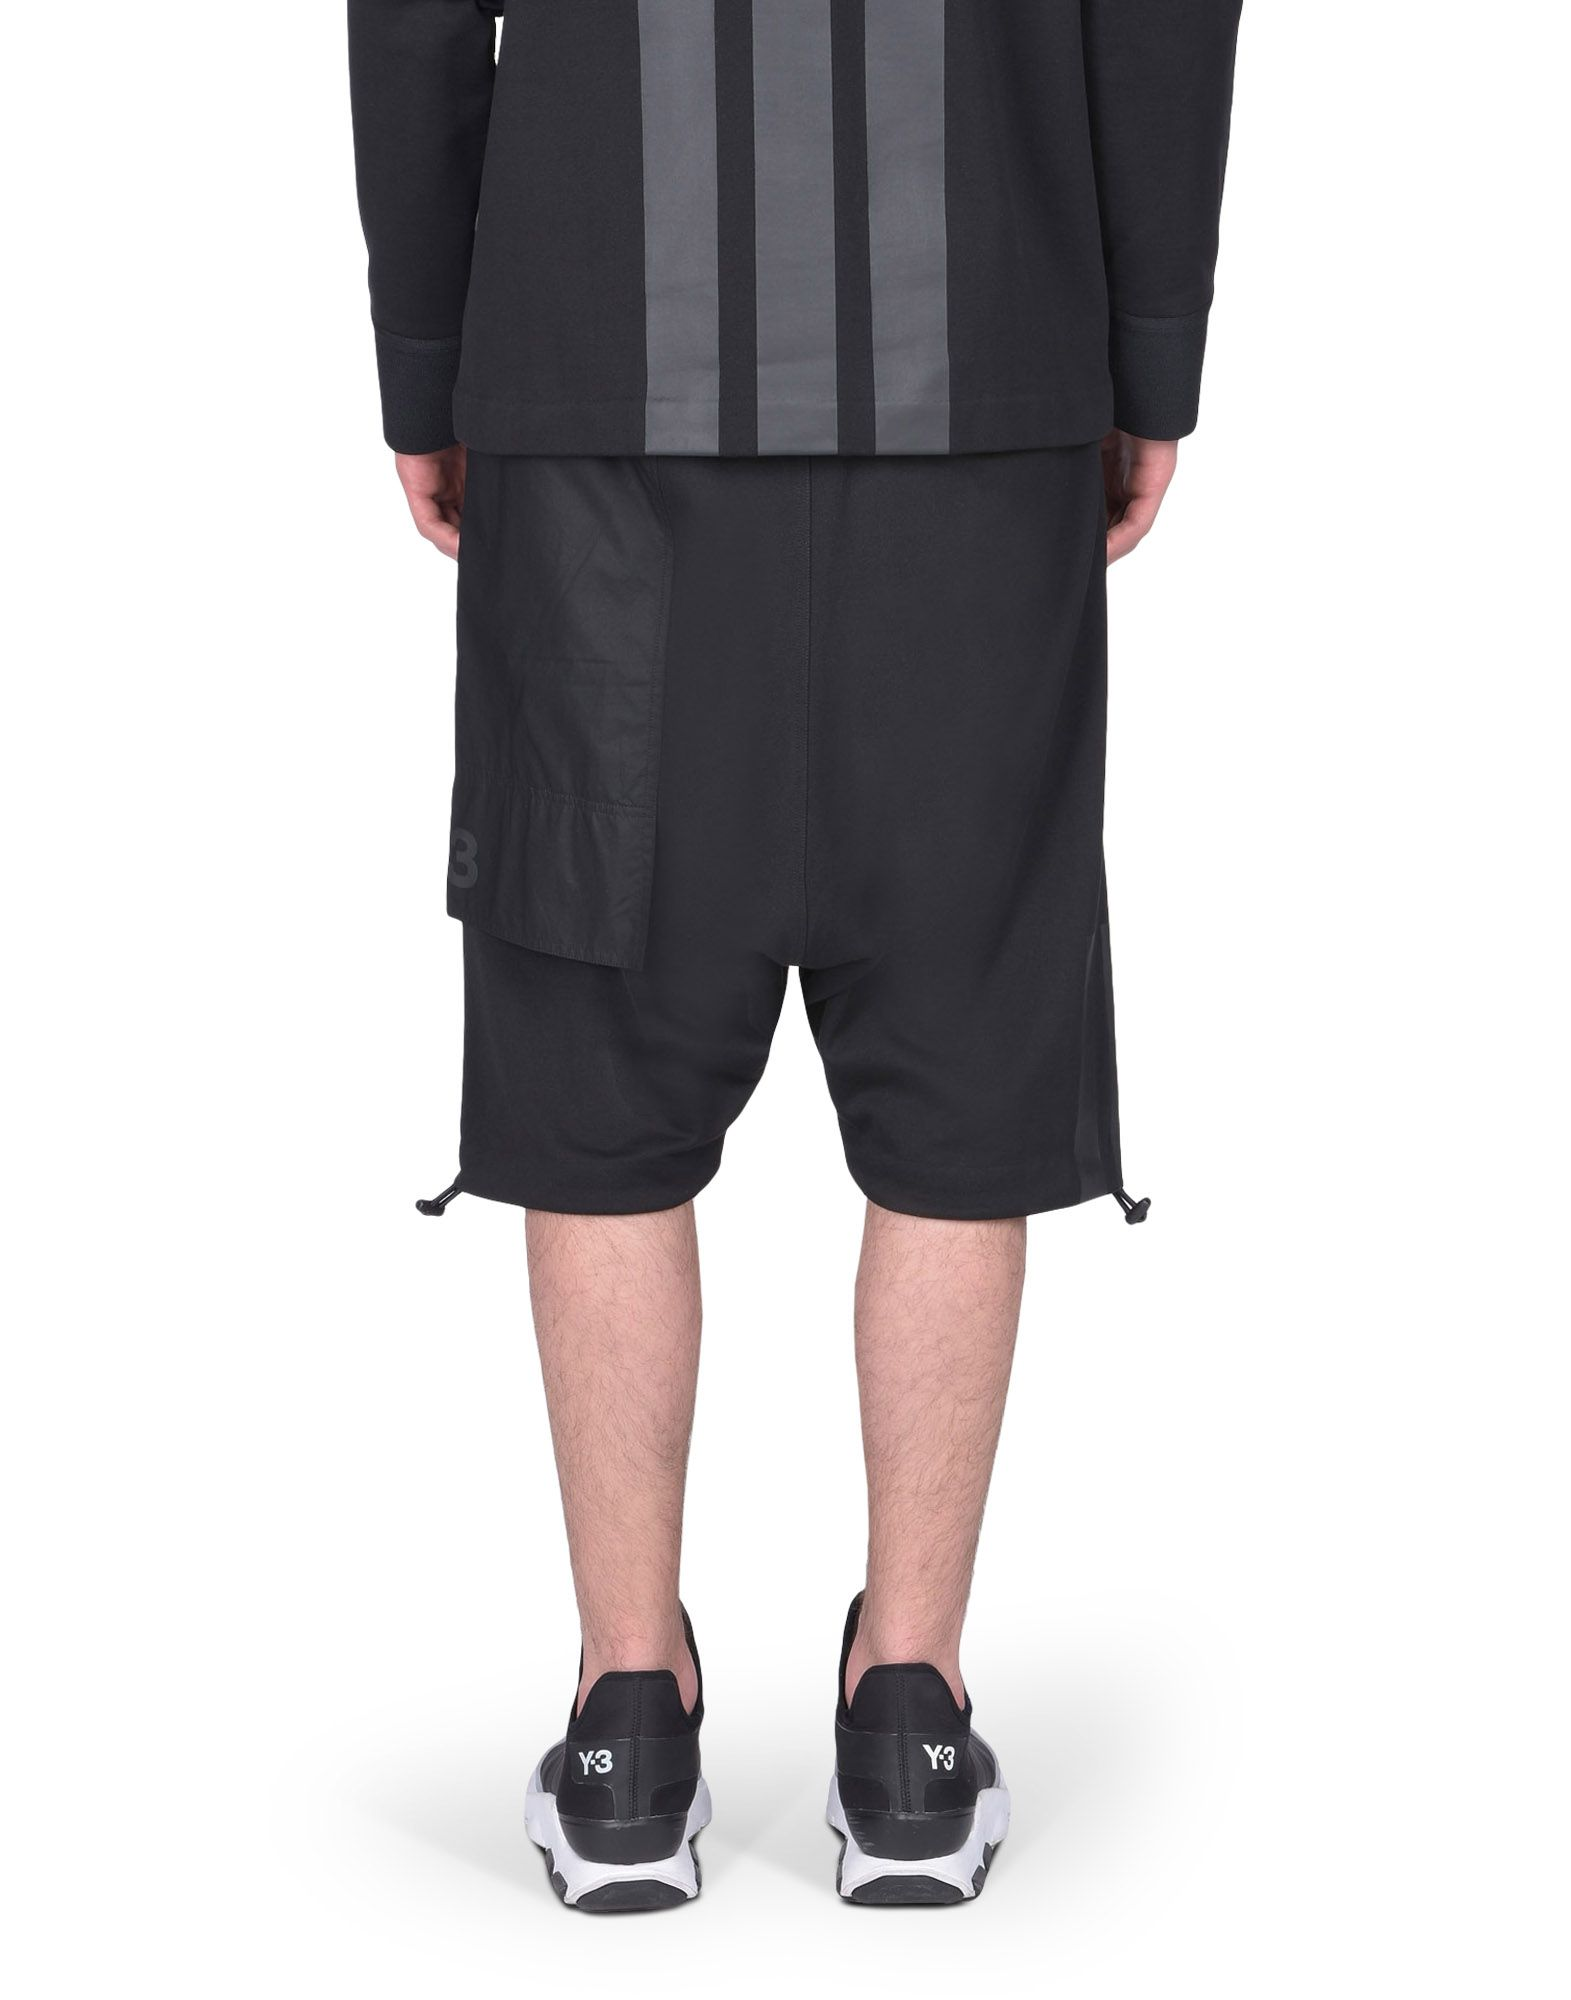 Y 3 FT SHORT PANTS man Y 3 adidas